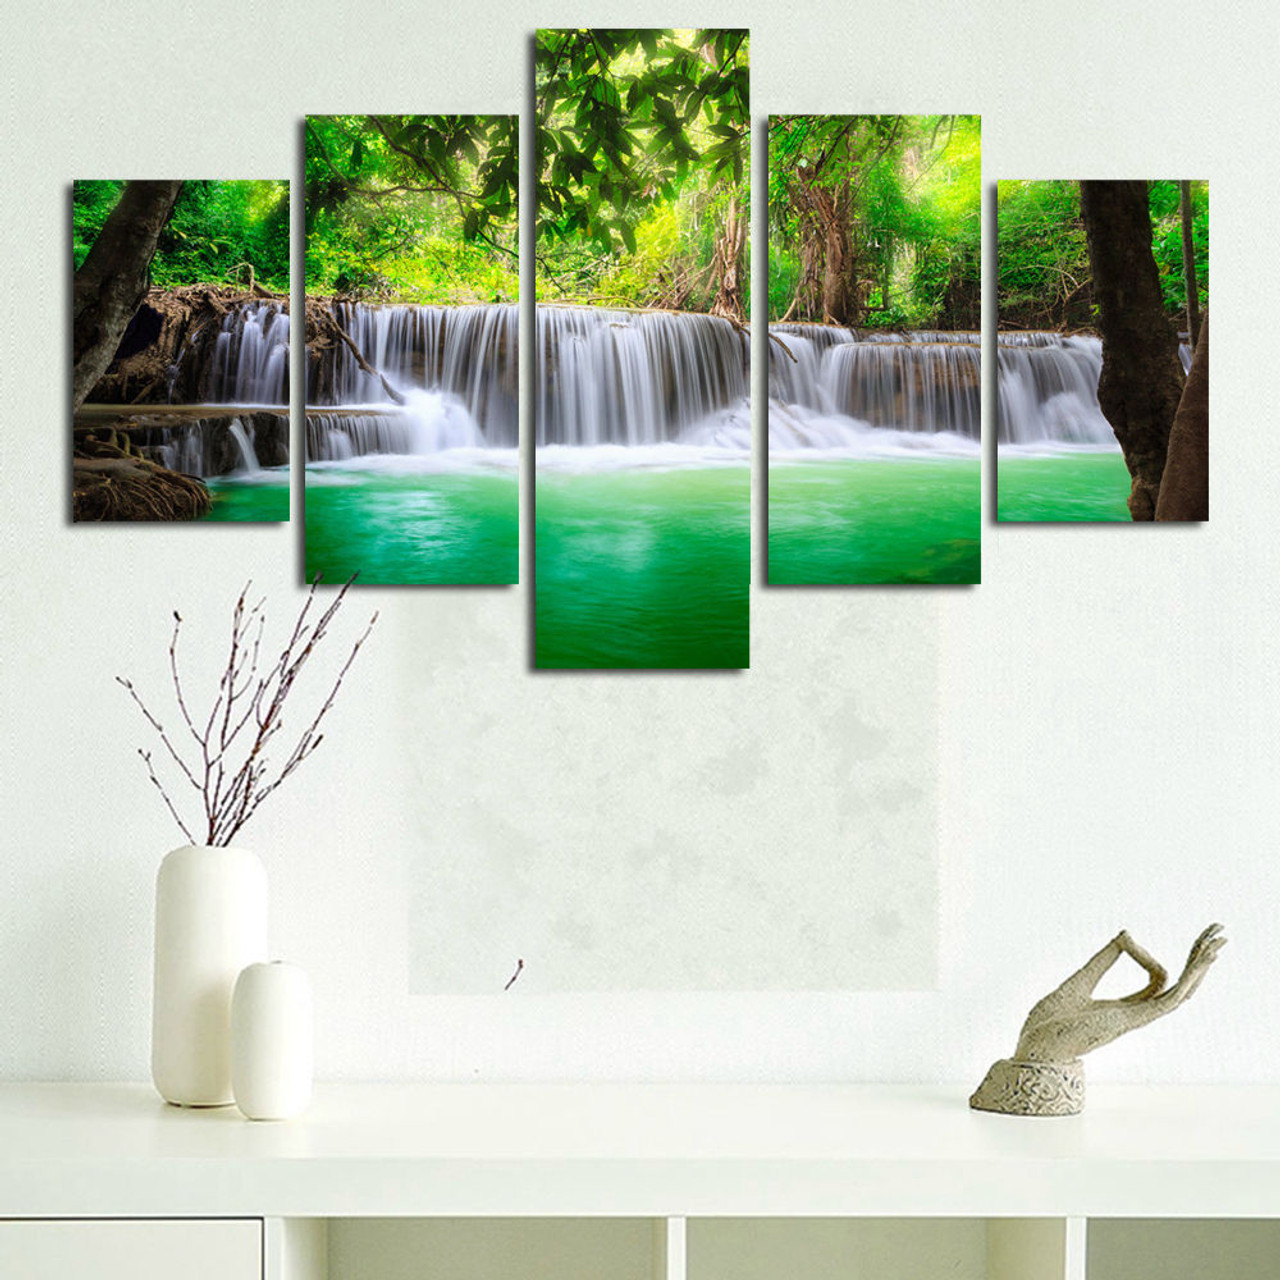 BANMU 5 Panel Waterfall Painting Canvas Wall Art Picture Home ...